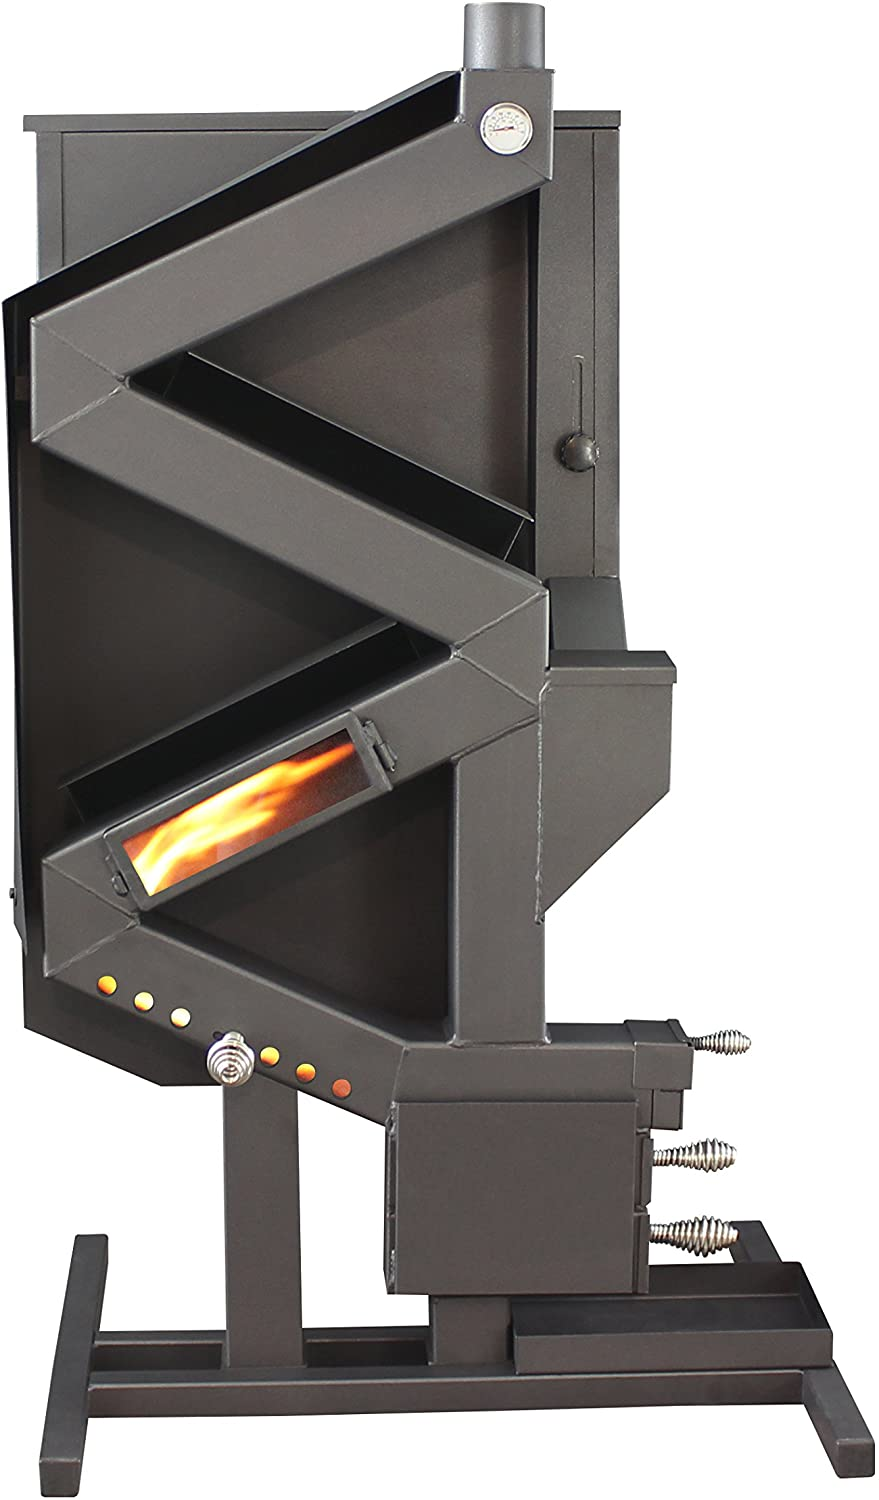 US Stove Company Pellet Stove